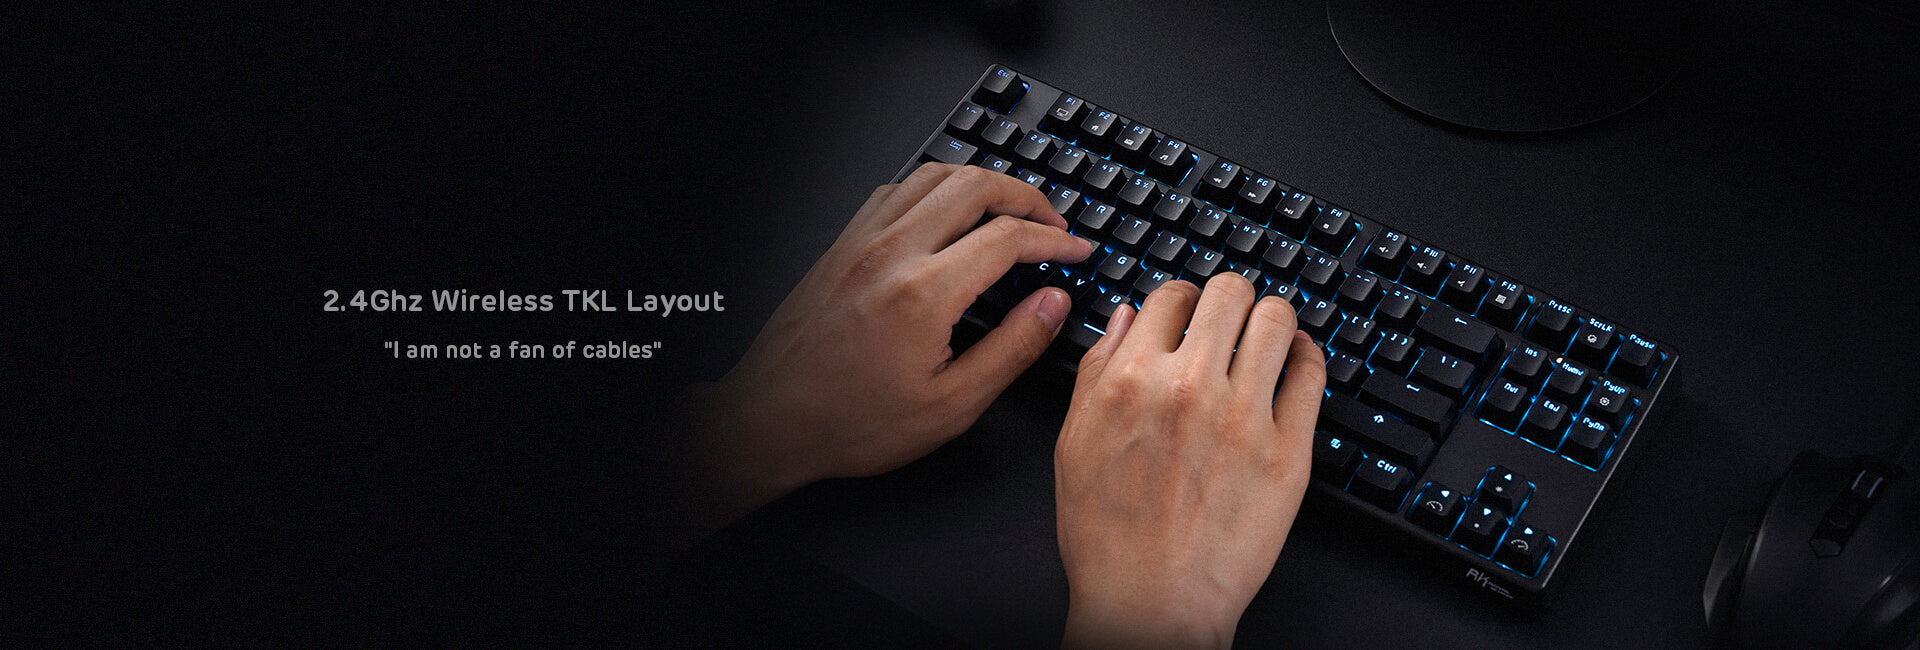 87 Keys No Numpad Tenkeyless Compact 2.4G Wireless Keyboard with Tactile Brown Switches